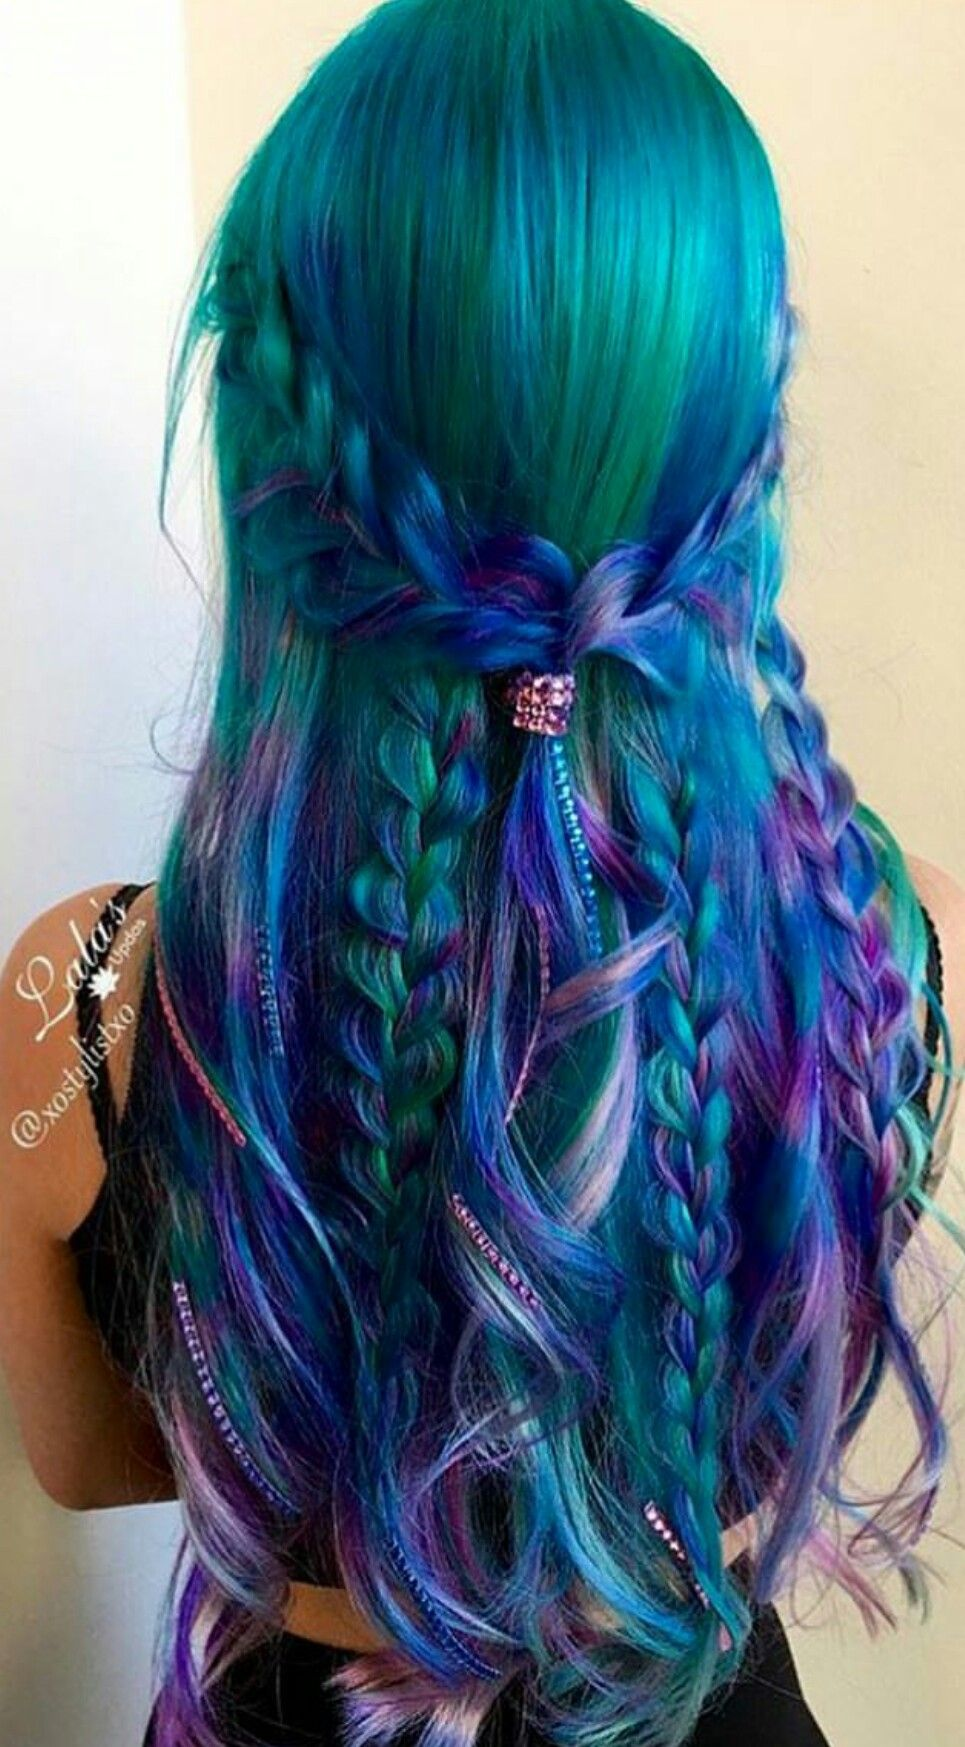 Green purple dyed hair color inspiration | Haircuts and Hairstyles ...